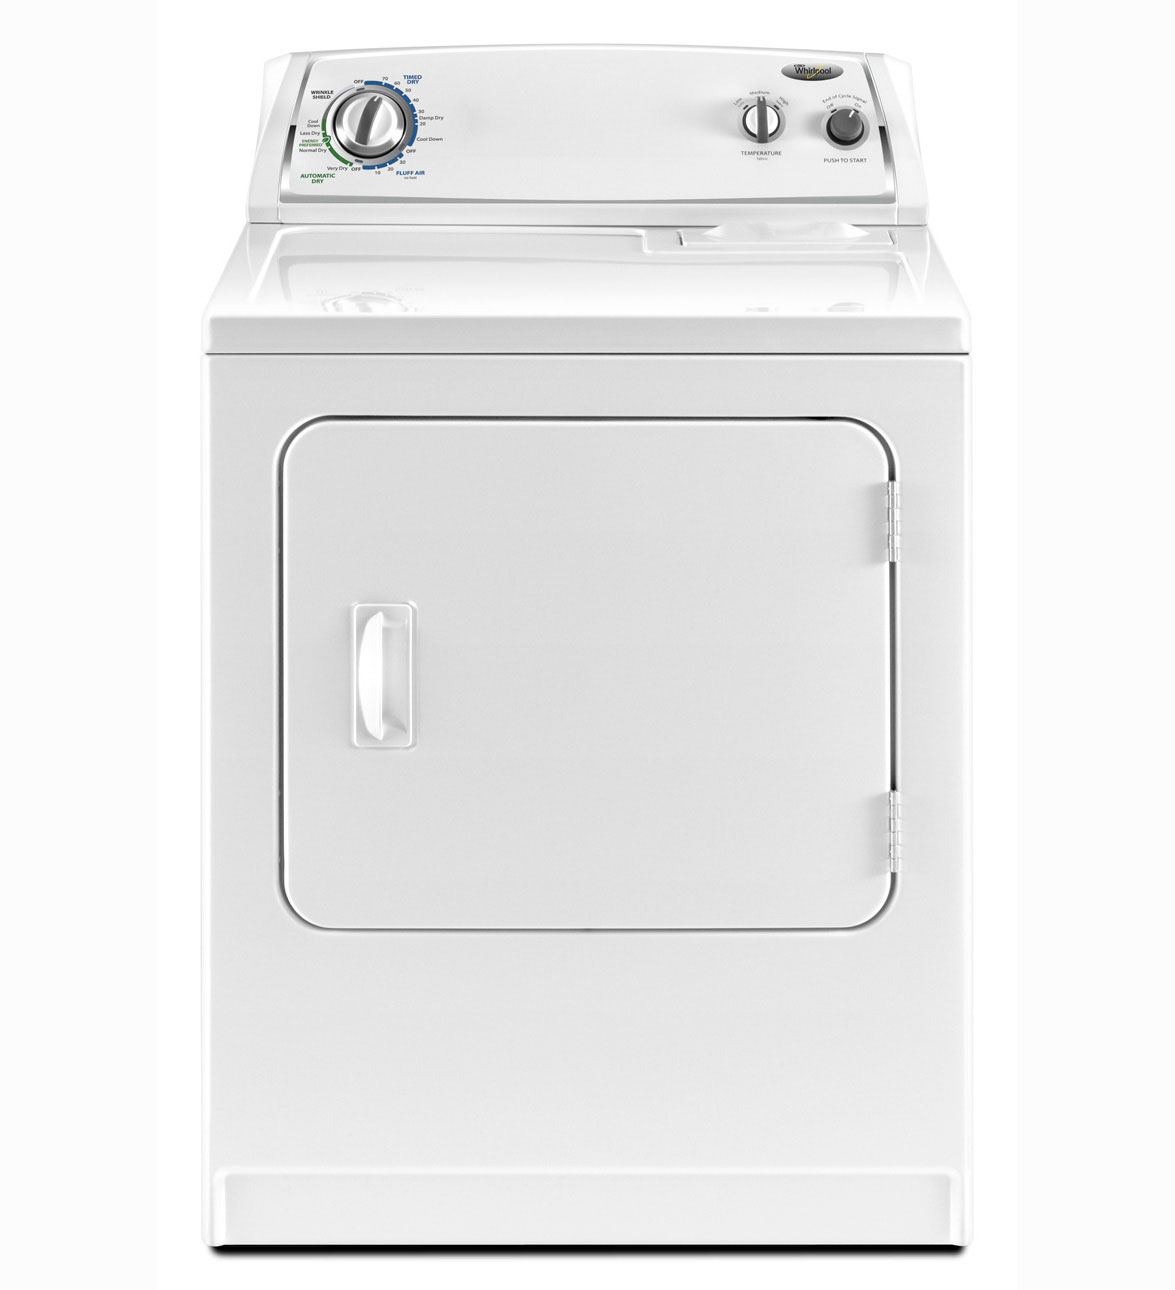 Whirlpool 7 cu ft Electric Dryer (White) (Model: WED4800XQ)